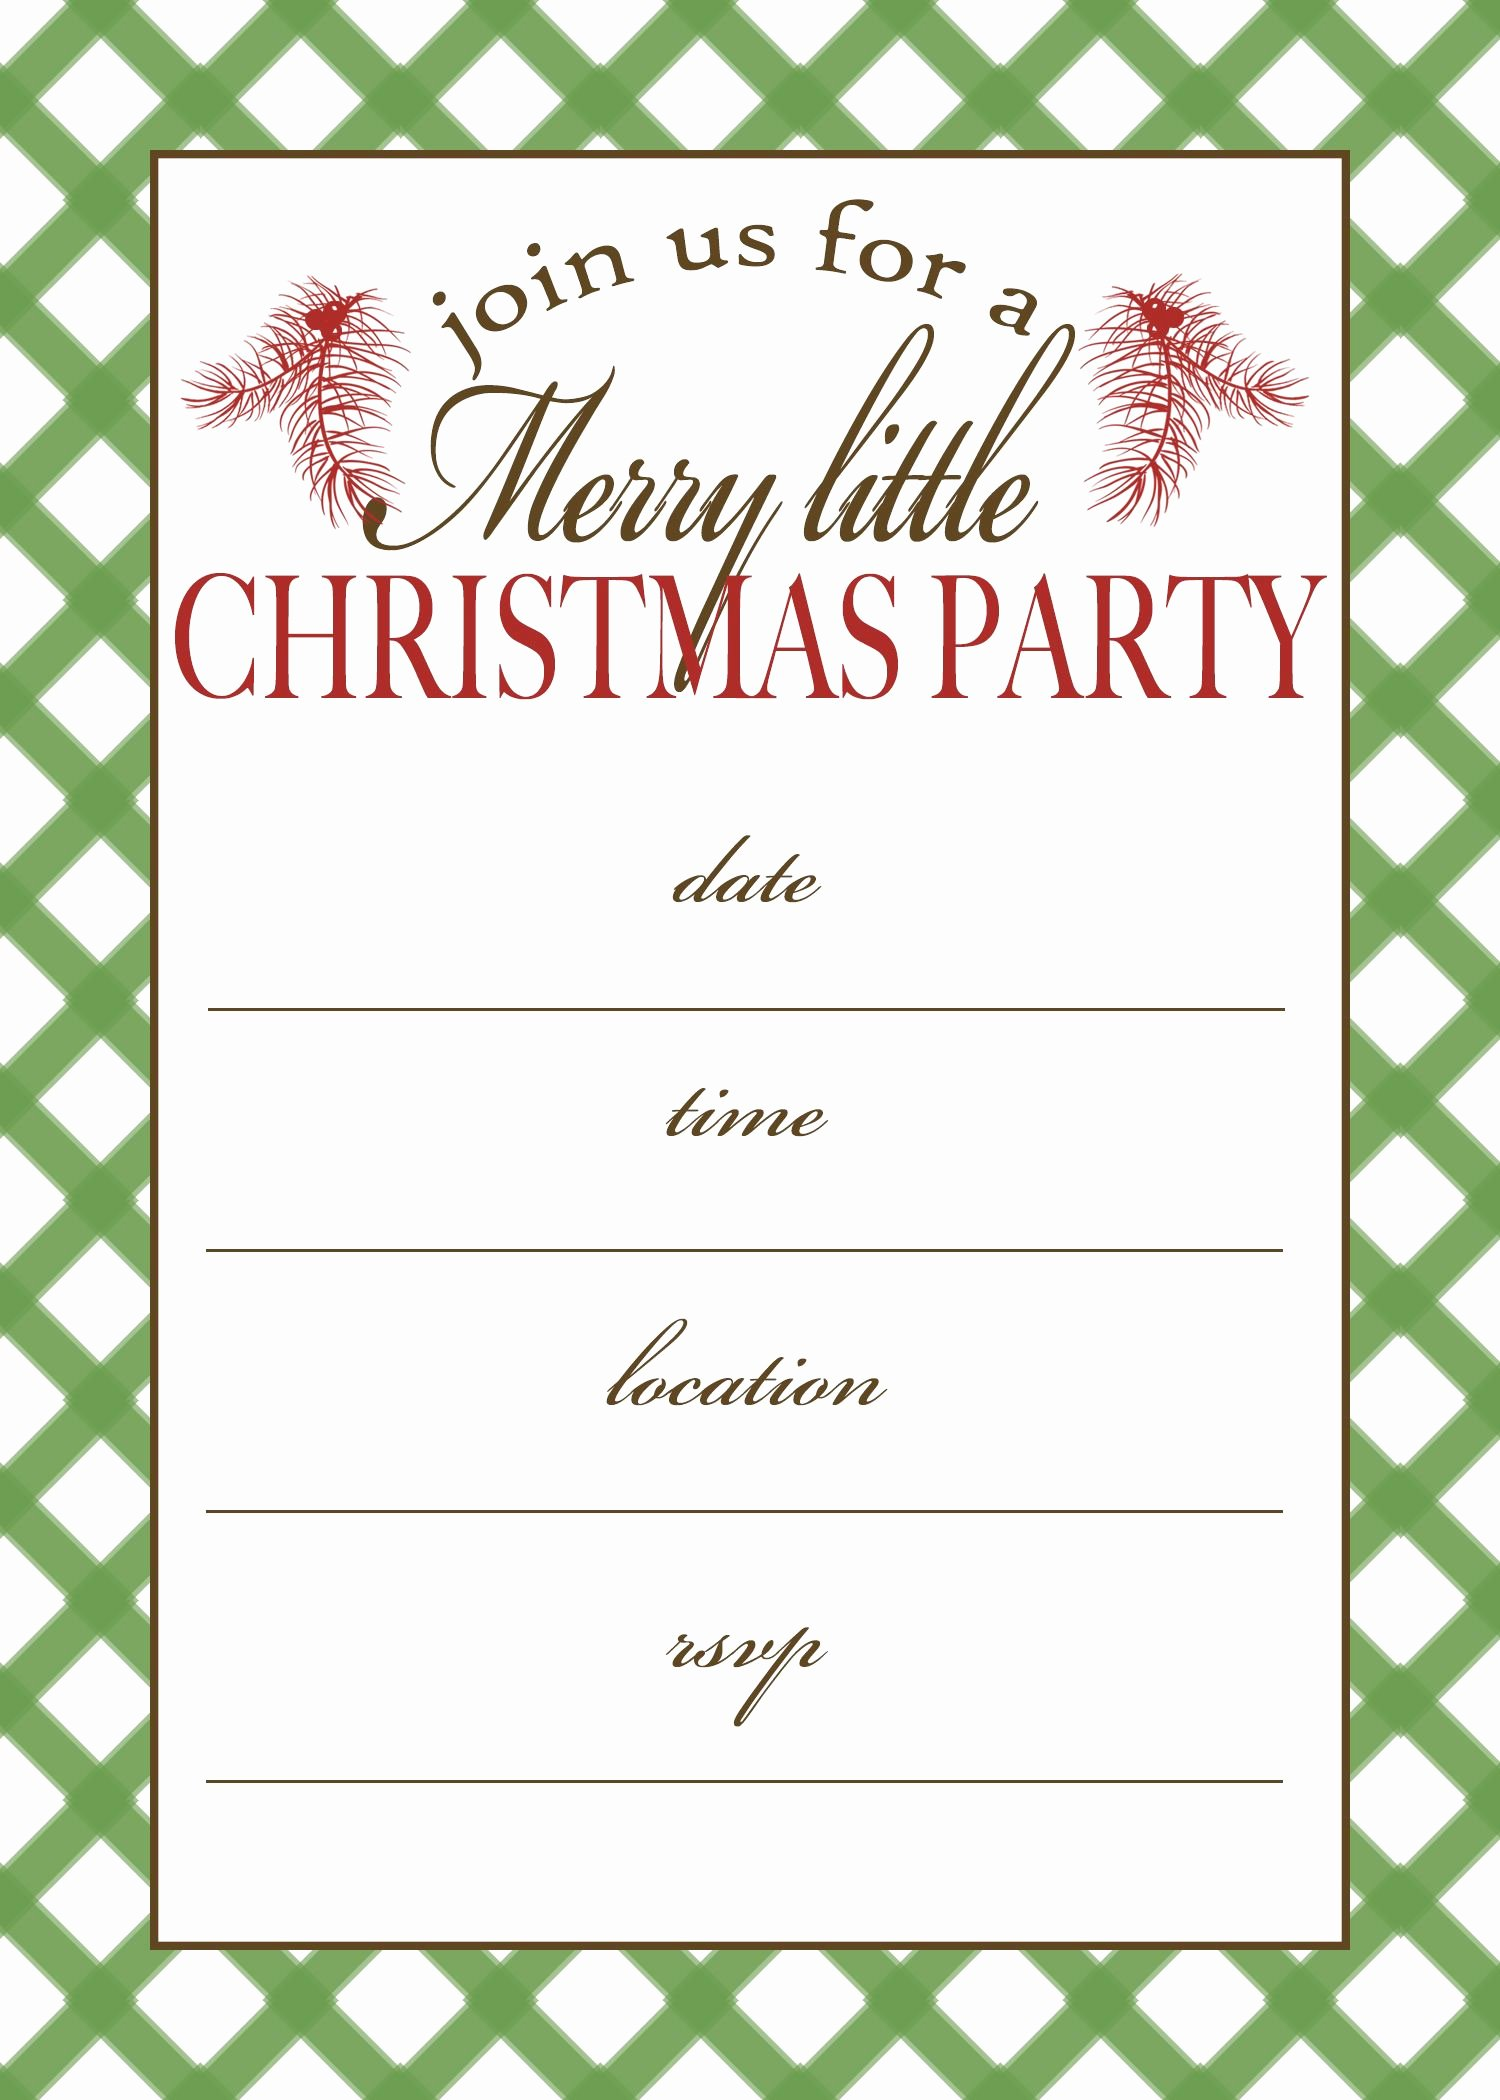 Free Christmas Party Invitations Template Awesome Free Printable Christmas Party Invitation